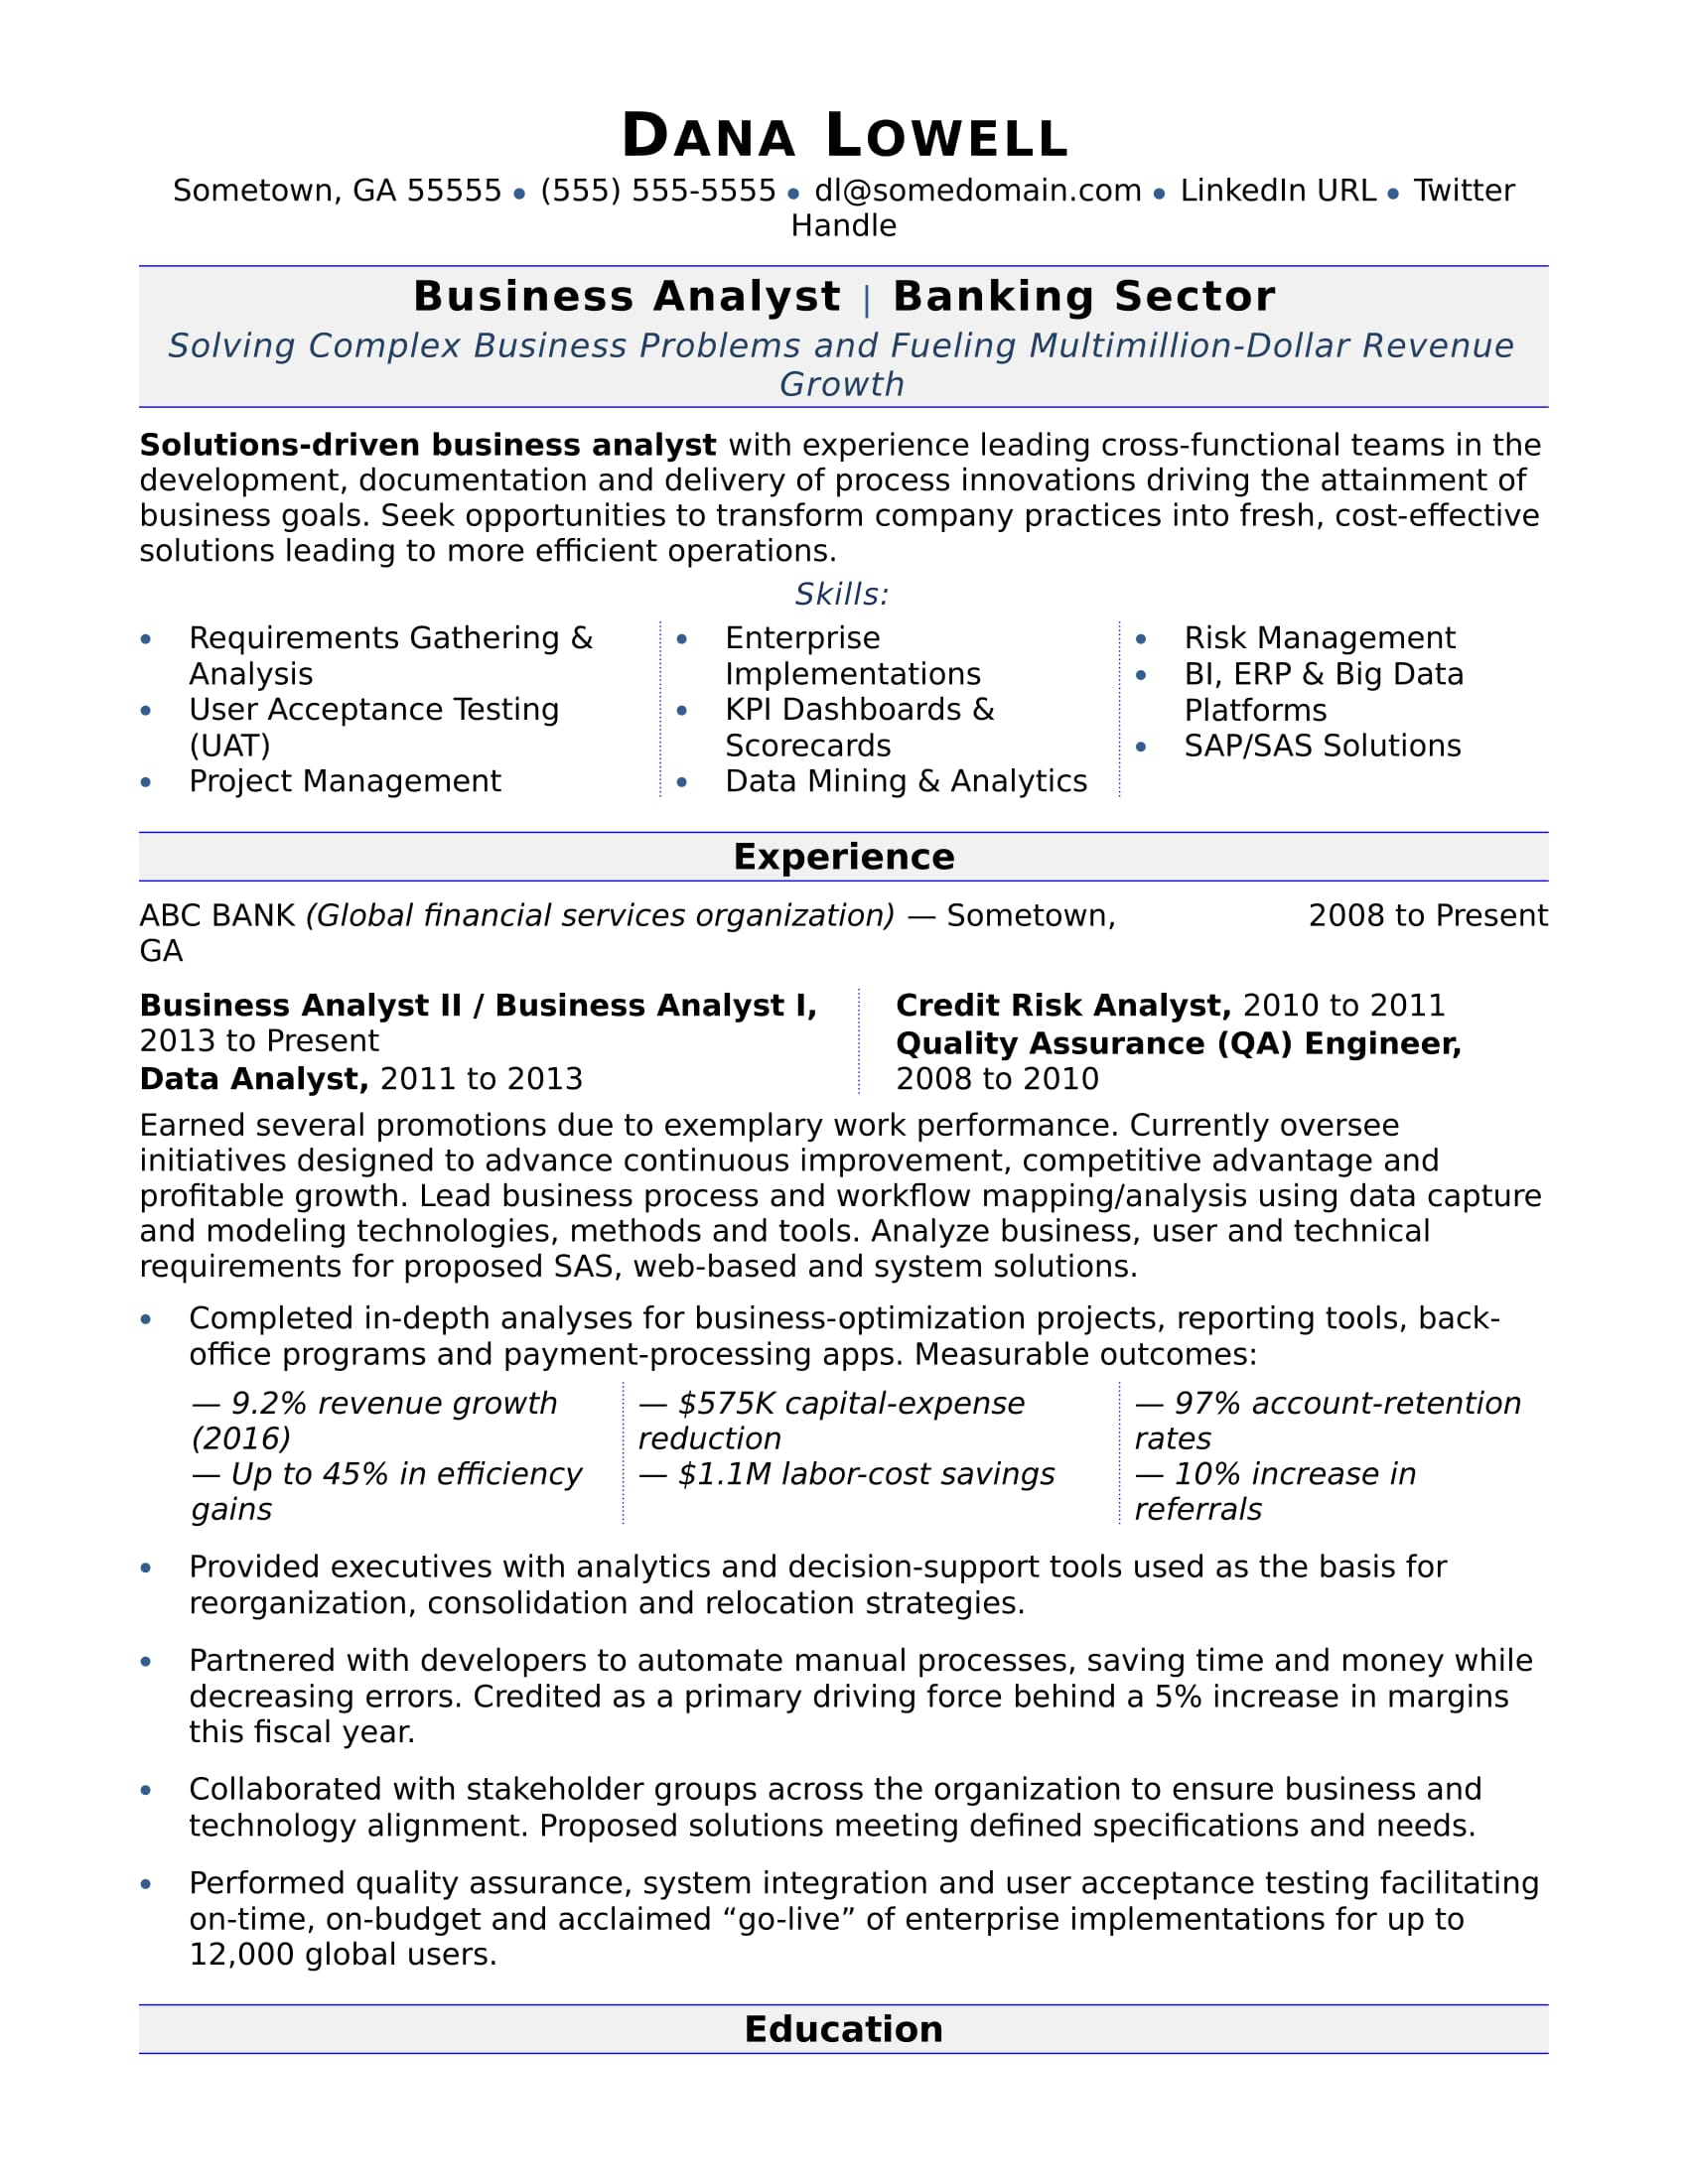 business analyst resume sample monster corporate examples businessanalyst phlebotomy for Resume Corporate Resume Examples